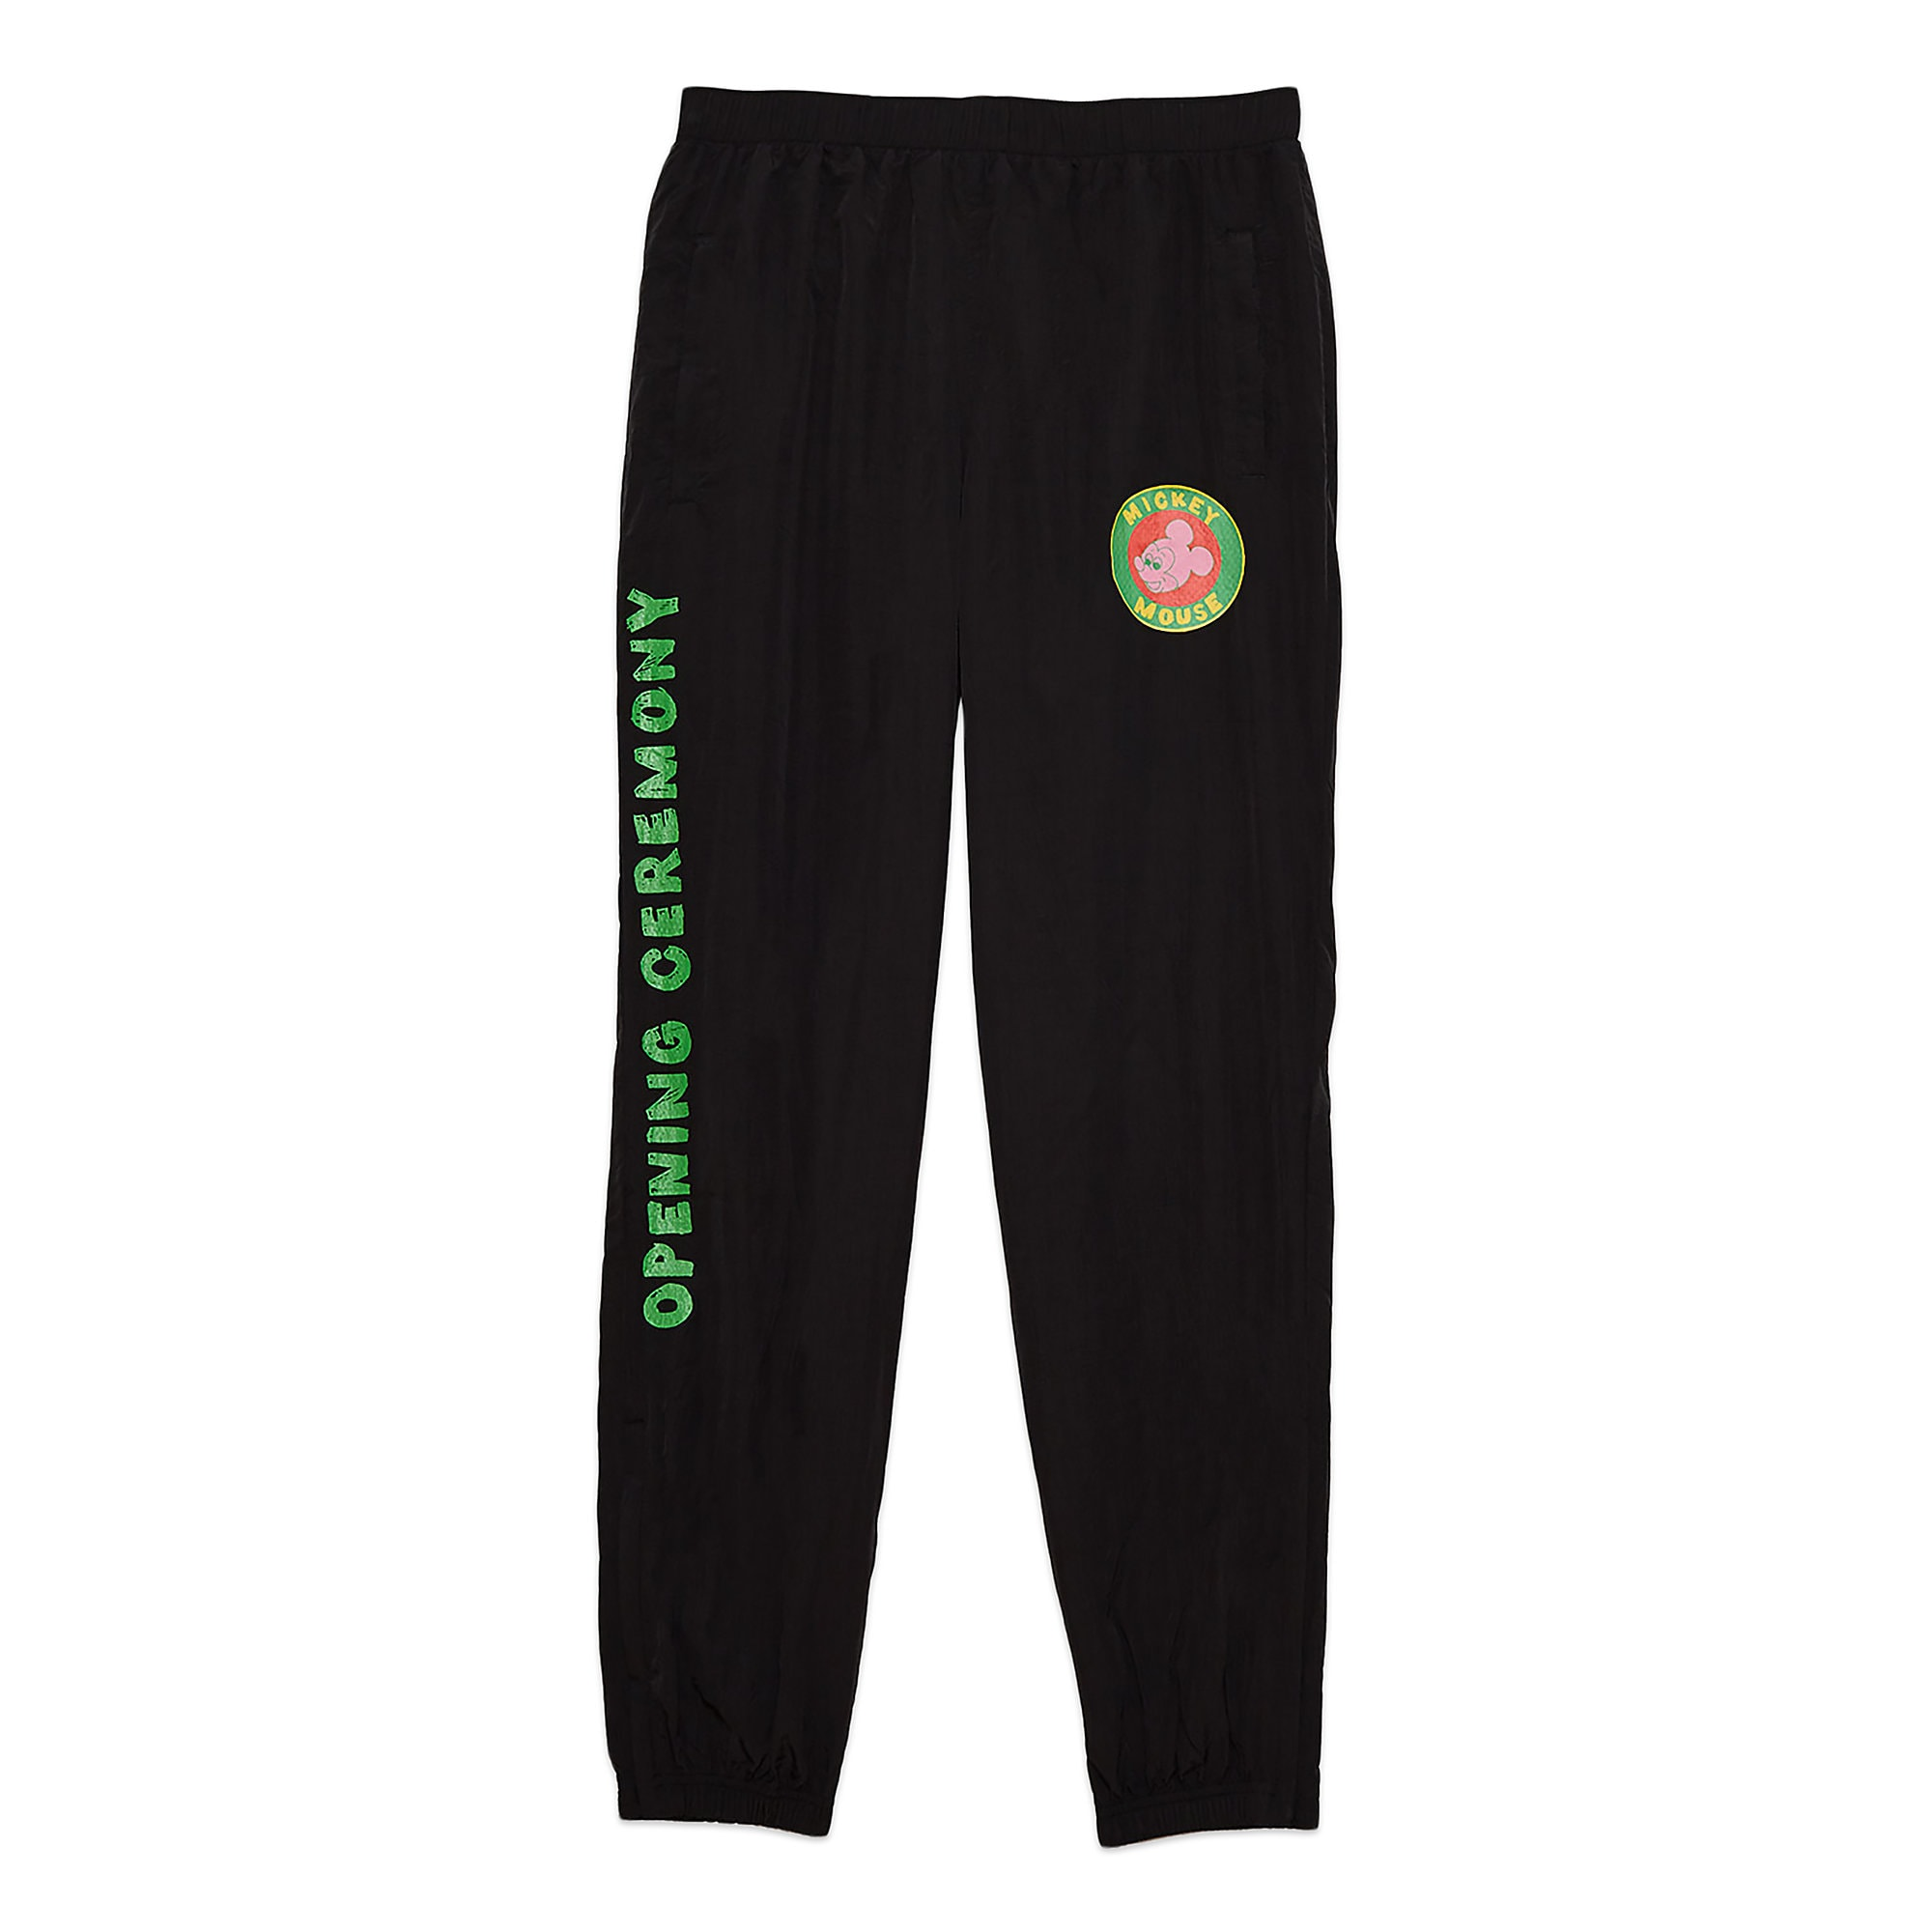 Mickey Mouse Track Pants for Adults by Opening Ceremony